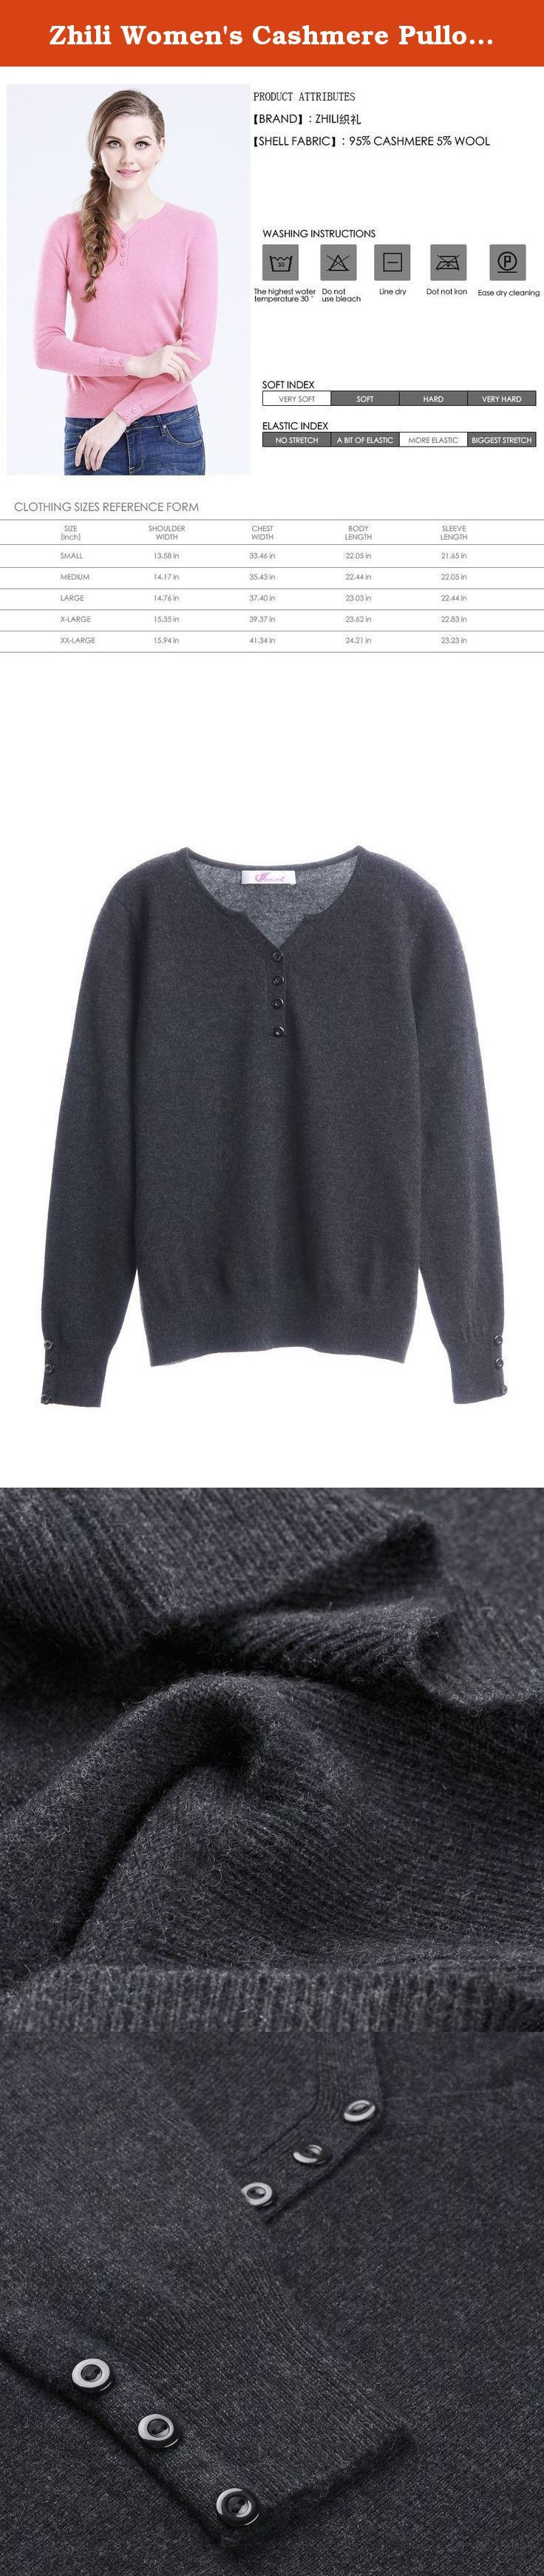 """Zhili Women's Cashmere Pullover Sweater (Medium, Dark grey). Our sweaters are made of fine cashmere. Luxurious, soft and really warm, our sweaters are made from the finest grade of cashmere wool. These sweaters are made from """"A-Grade""""pure cashmere yarn, and offer unsurpassed warmth and softness. 200 a variety of men and women's cashmere sweater, welcome to enter the shop to buy Note: only sales of cashmere sweaters, not including the inside collocation shirt and accessories."""